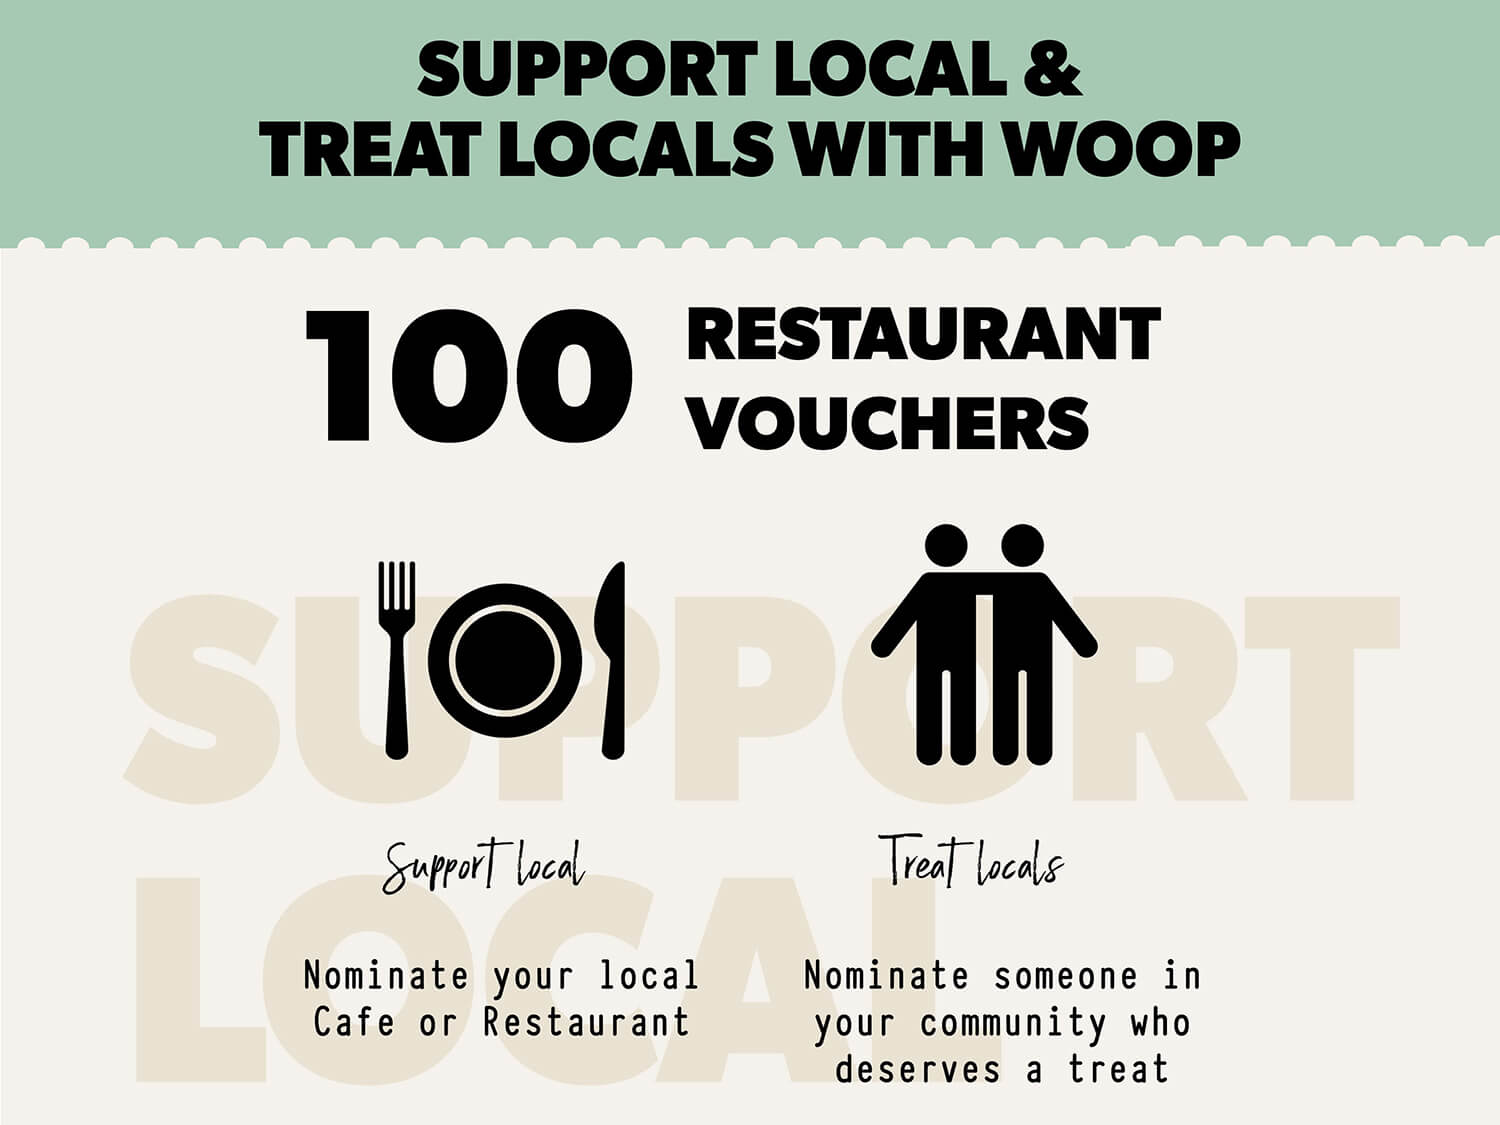 SUPPORT LOCAL & TREAT LOCALS WITH WOOP